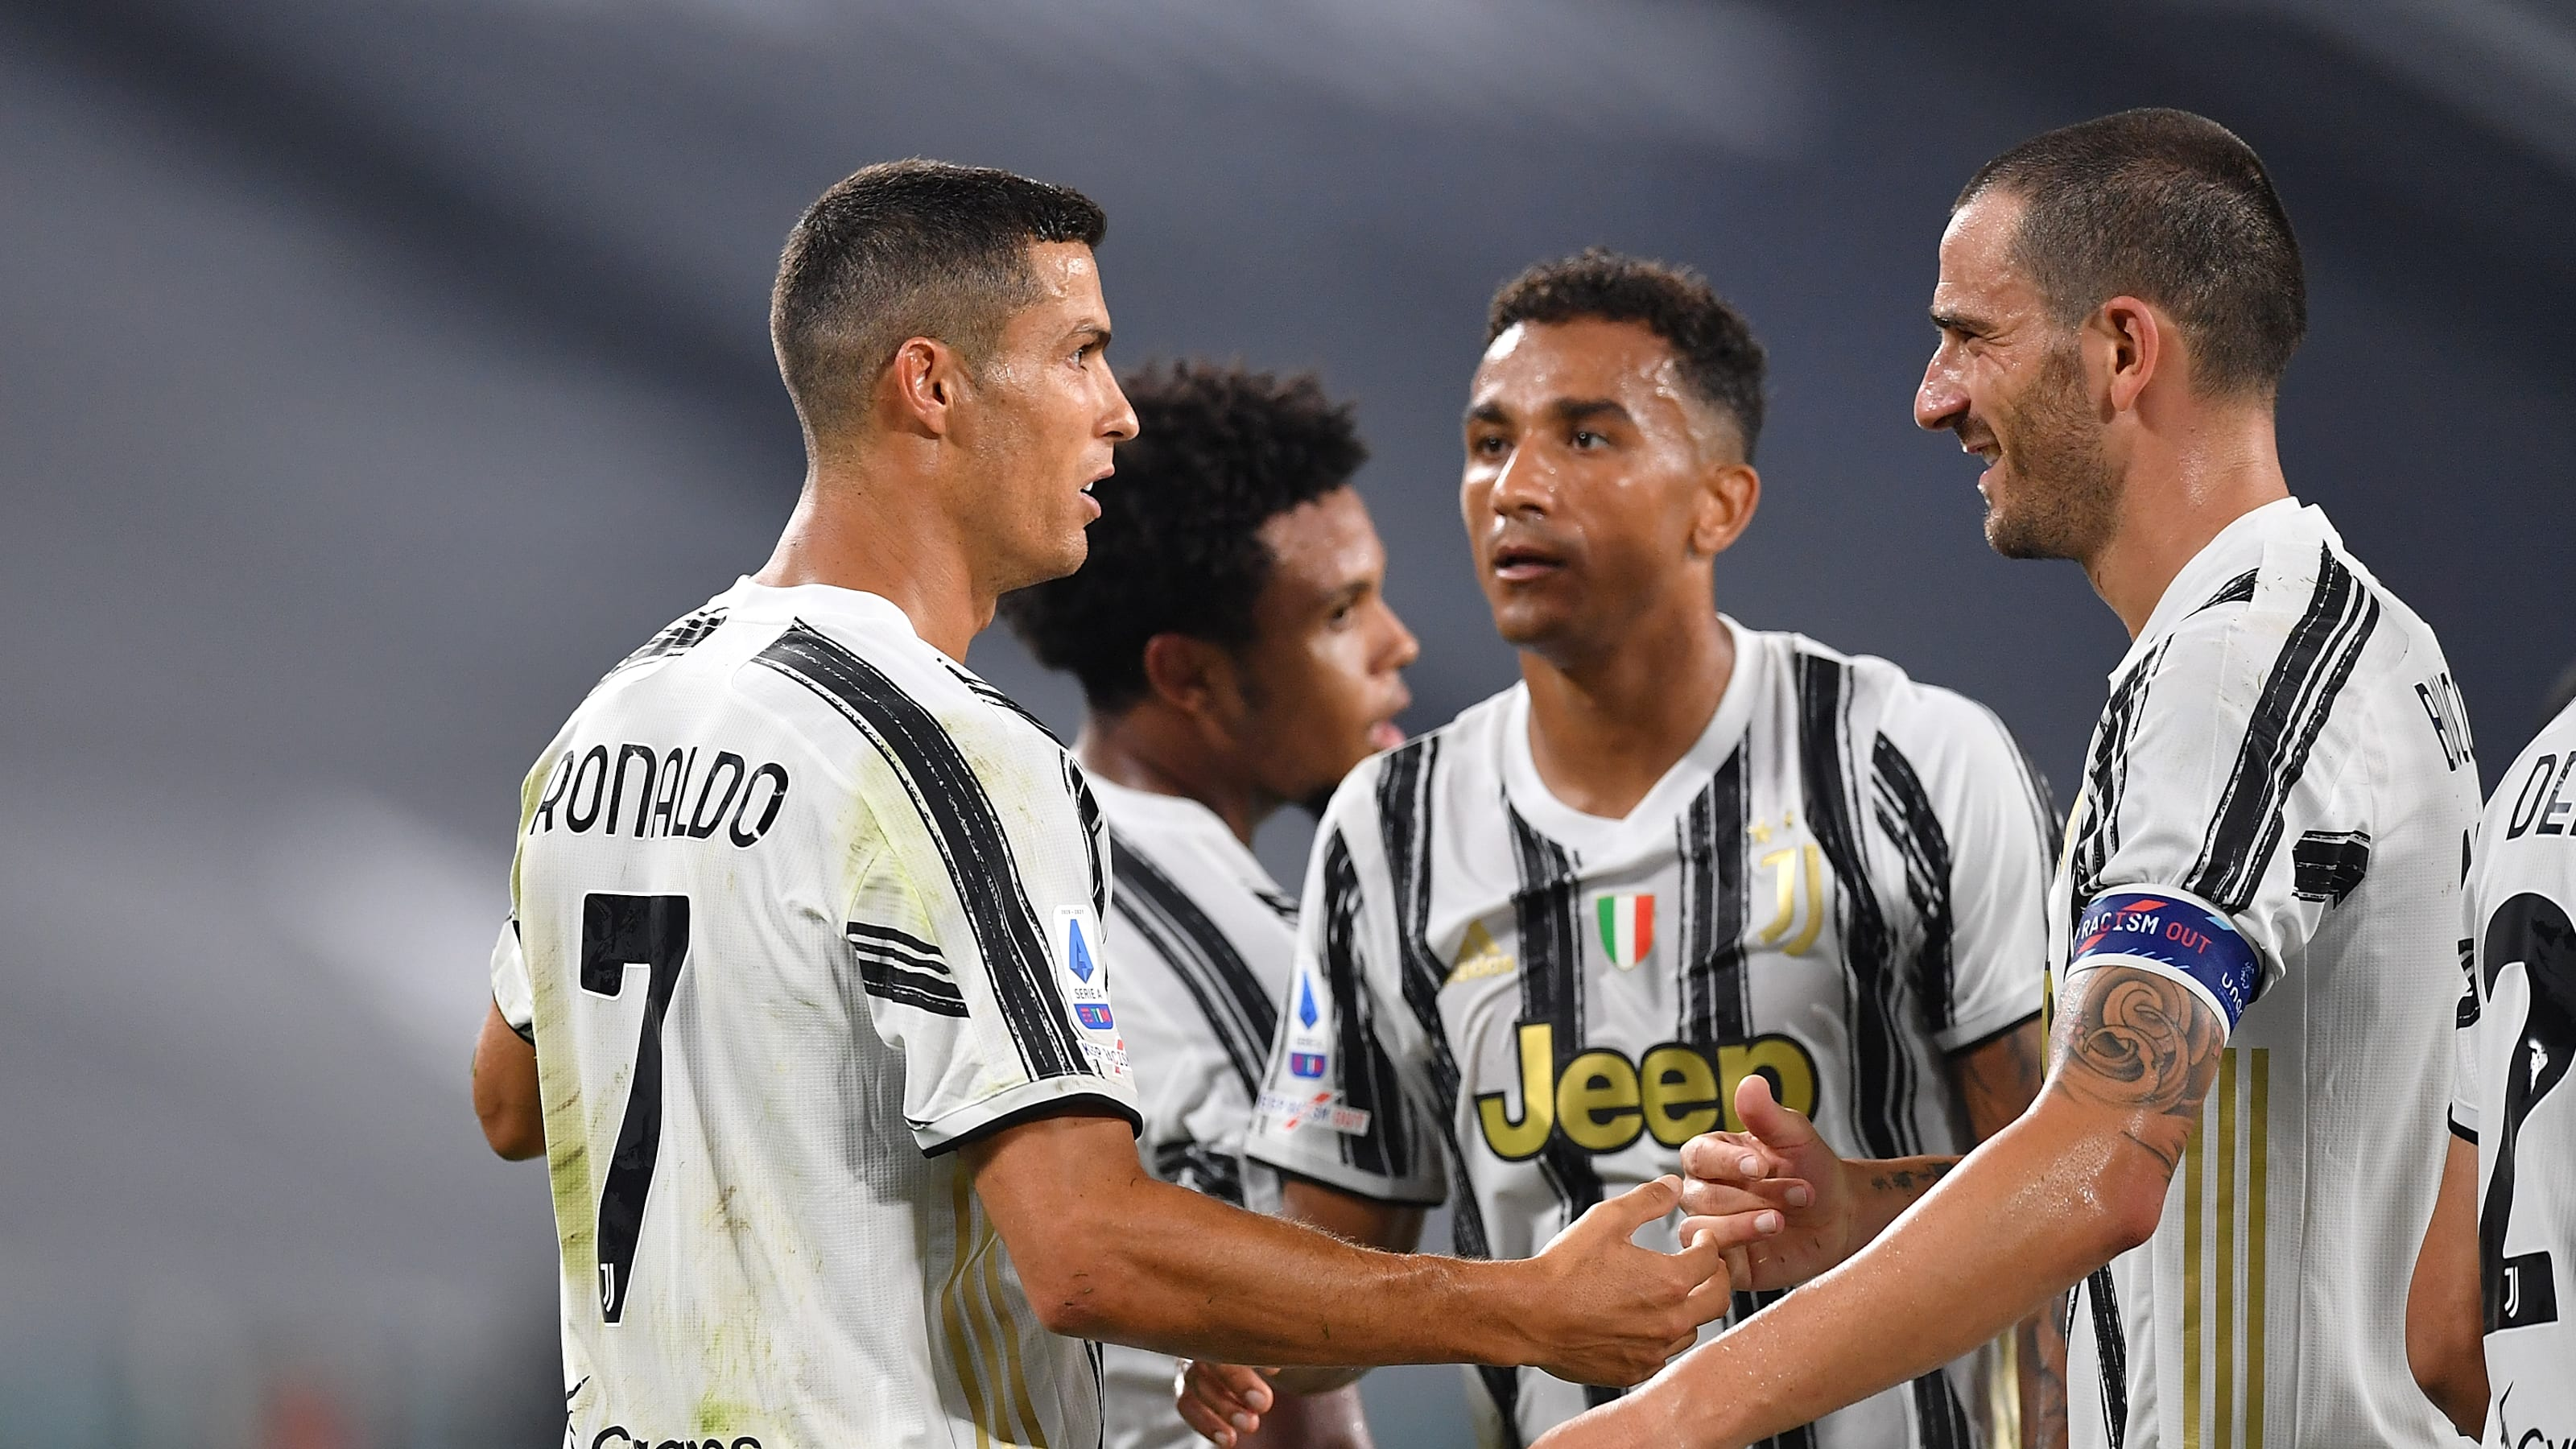 Serie A 2020 21 Juventus Vs Napoli And Matchweek 3 Fixtures Tv Times And Where To Watch Live Streaming In India